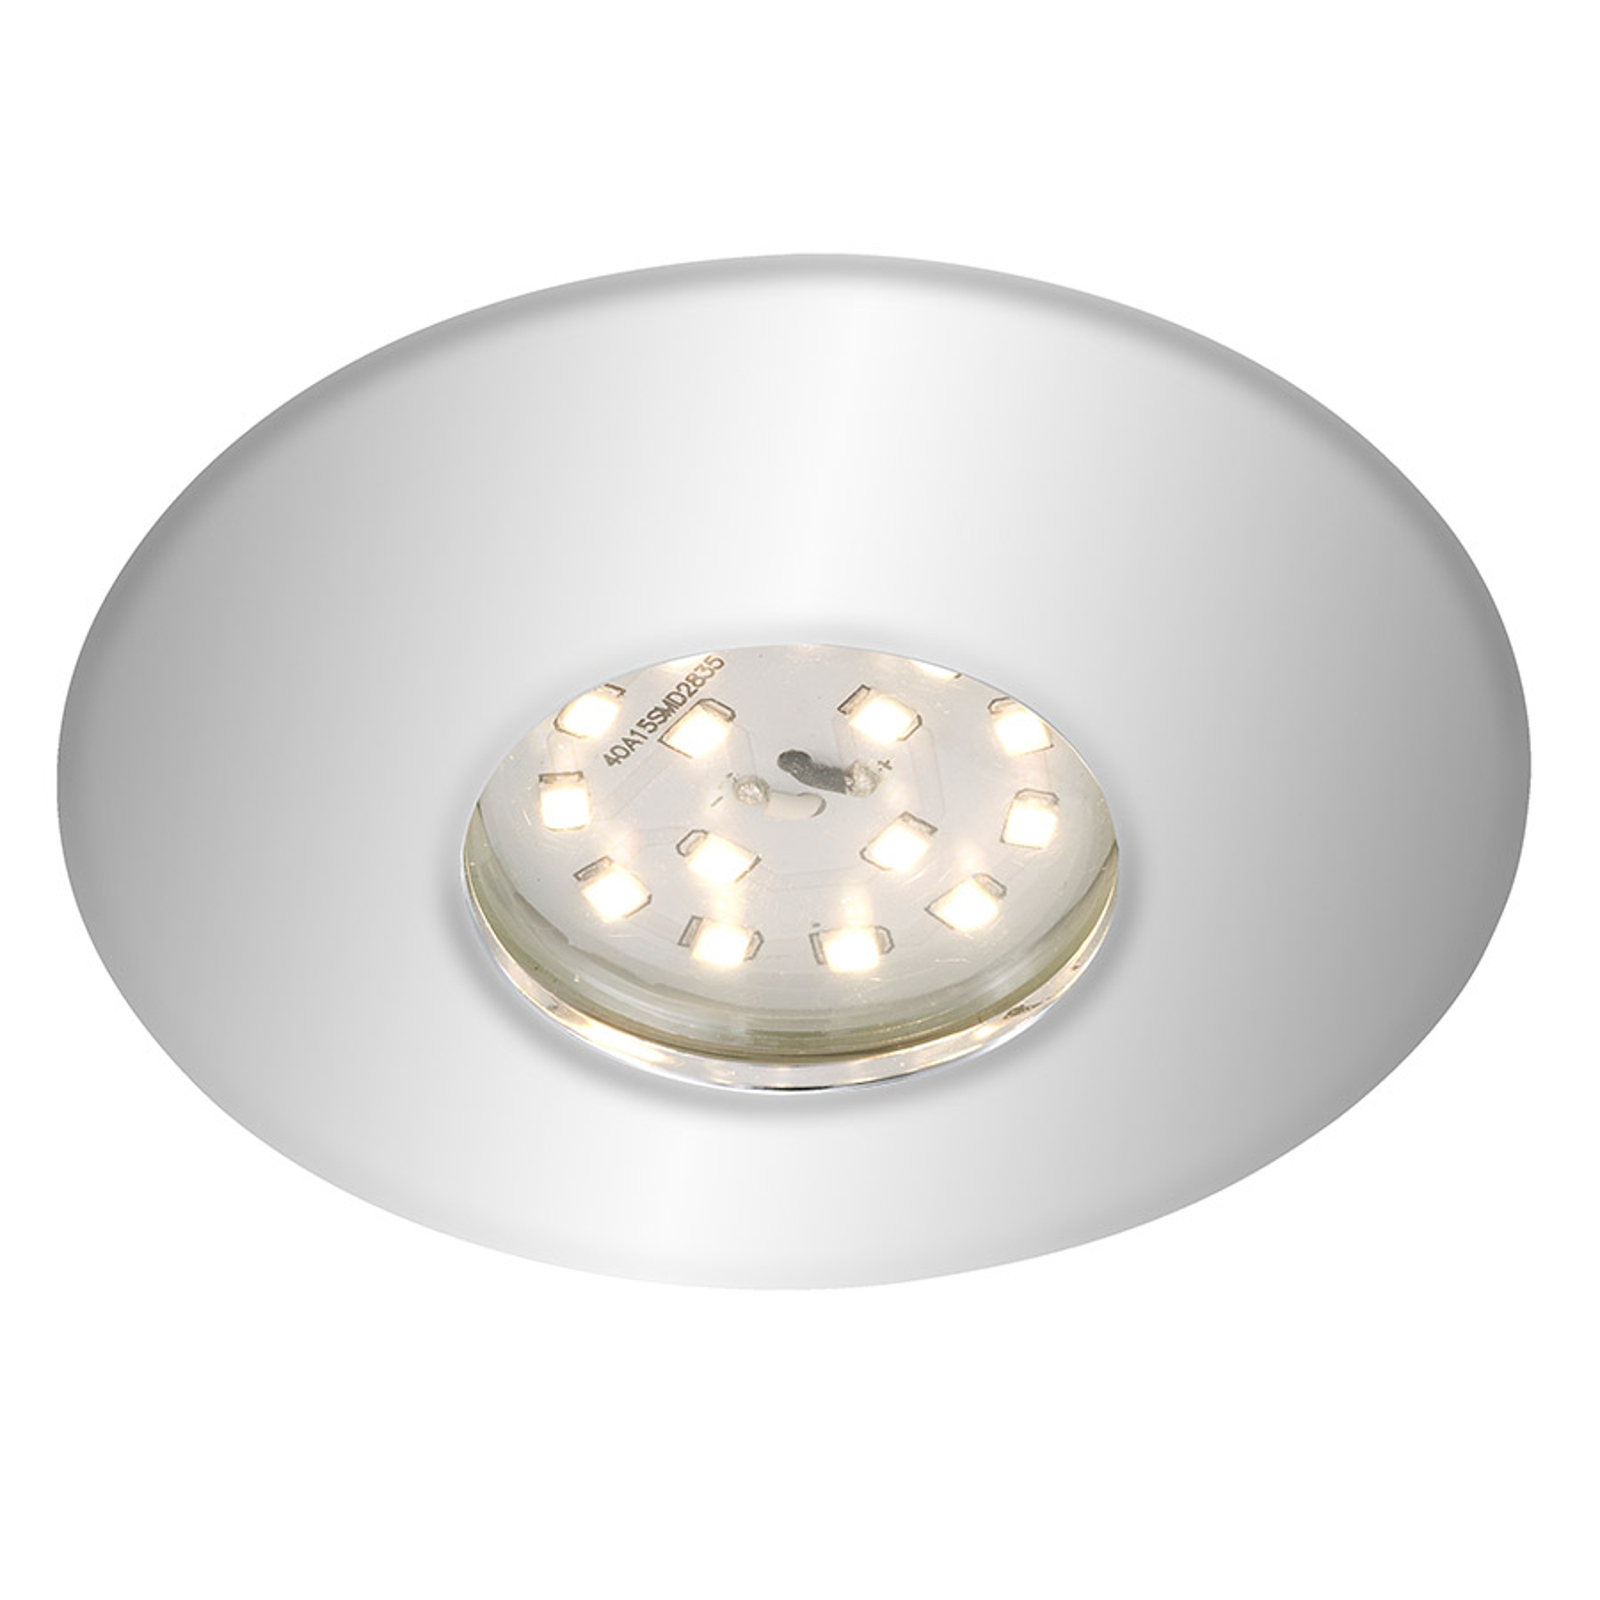 Chrome-plated LED recessed light Shower, IP65_1510317_1